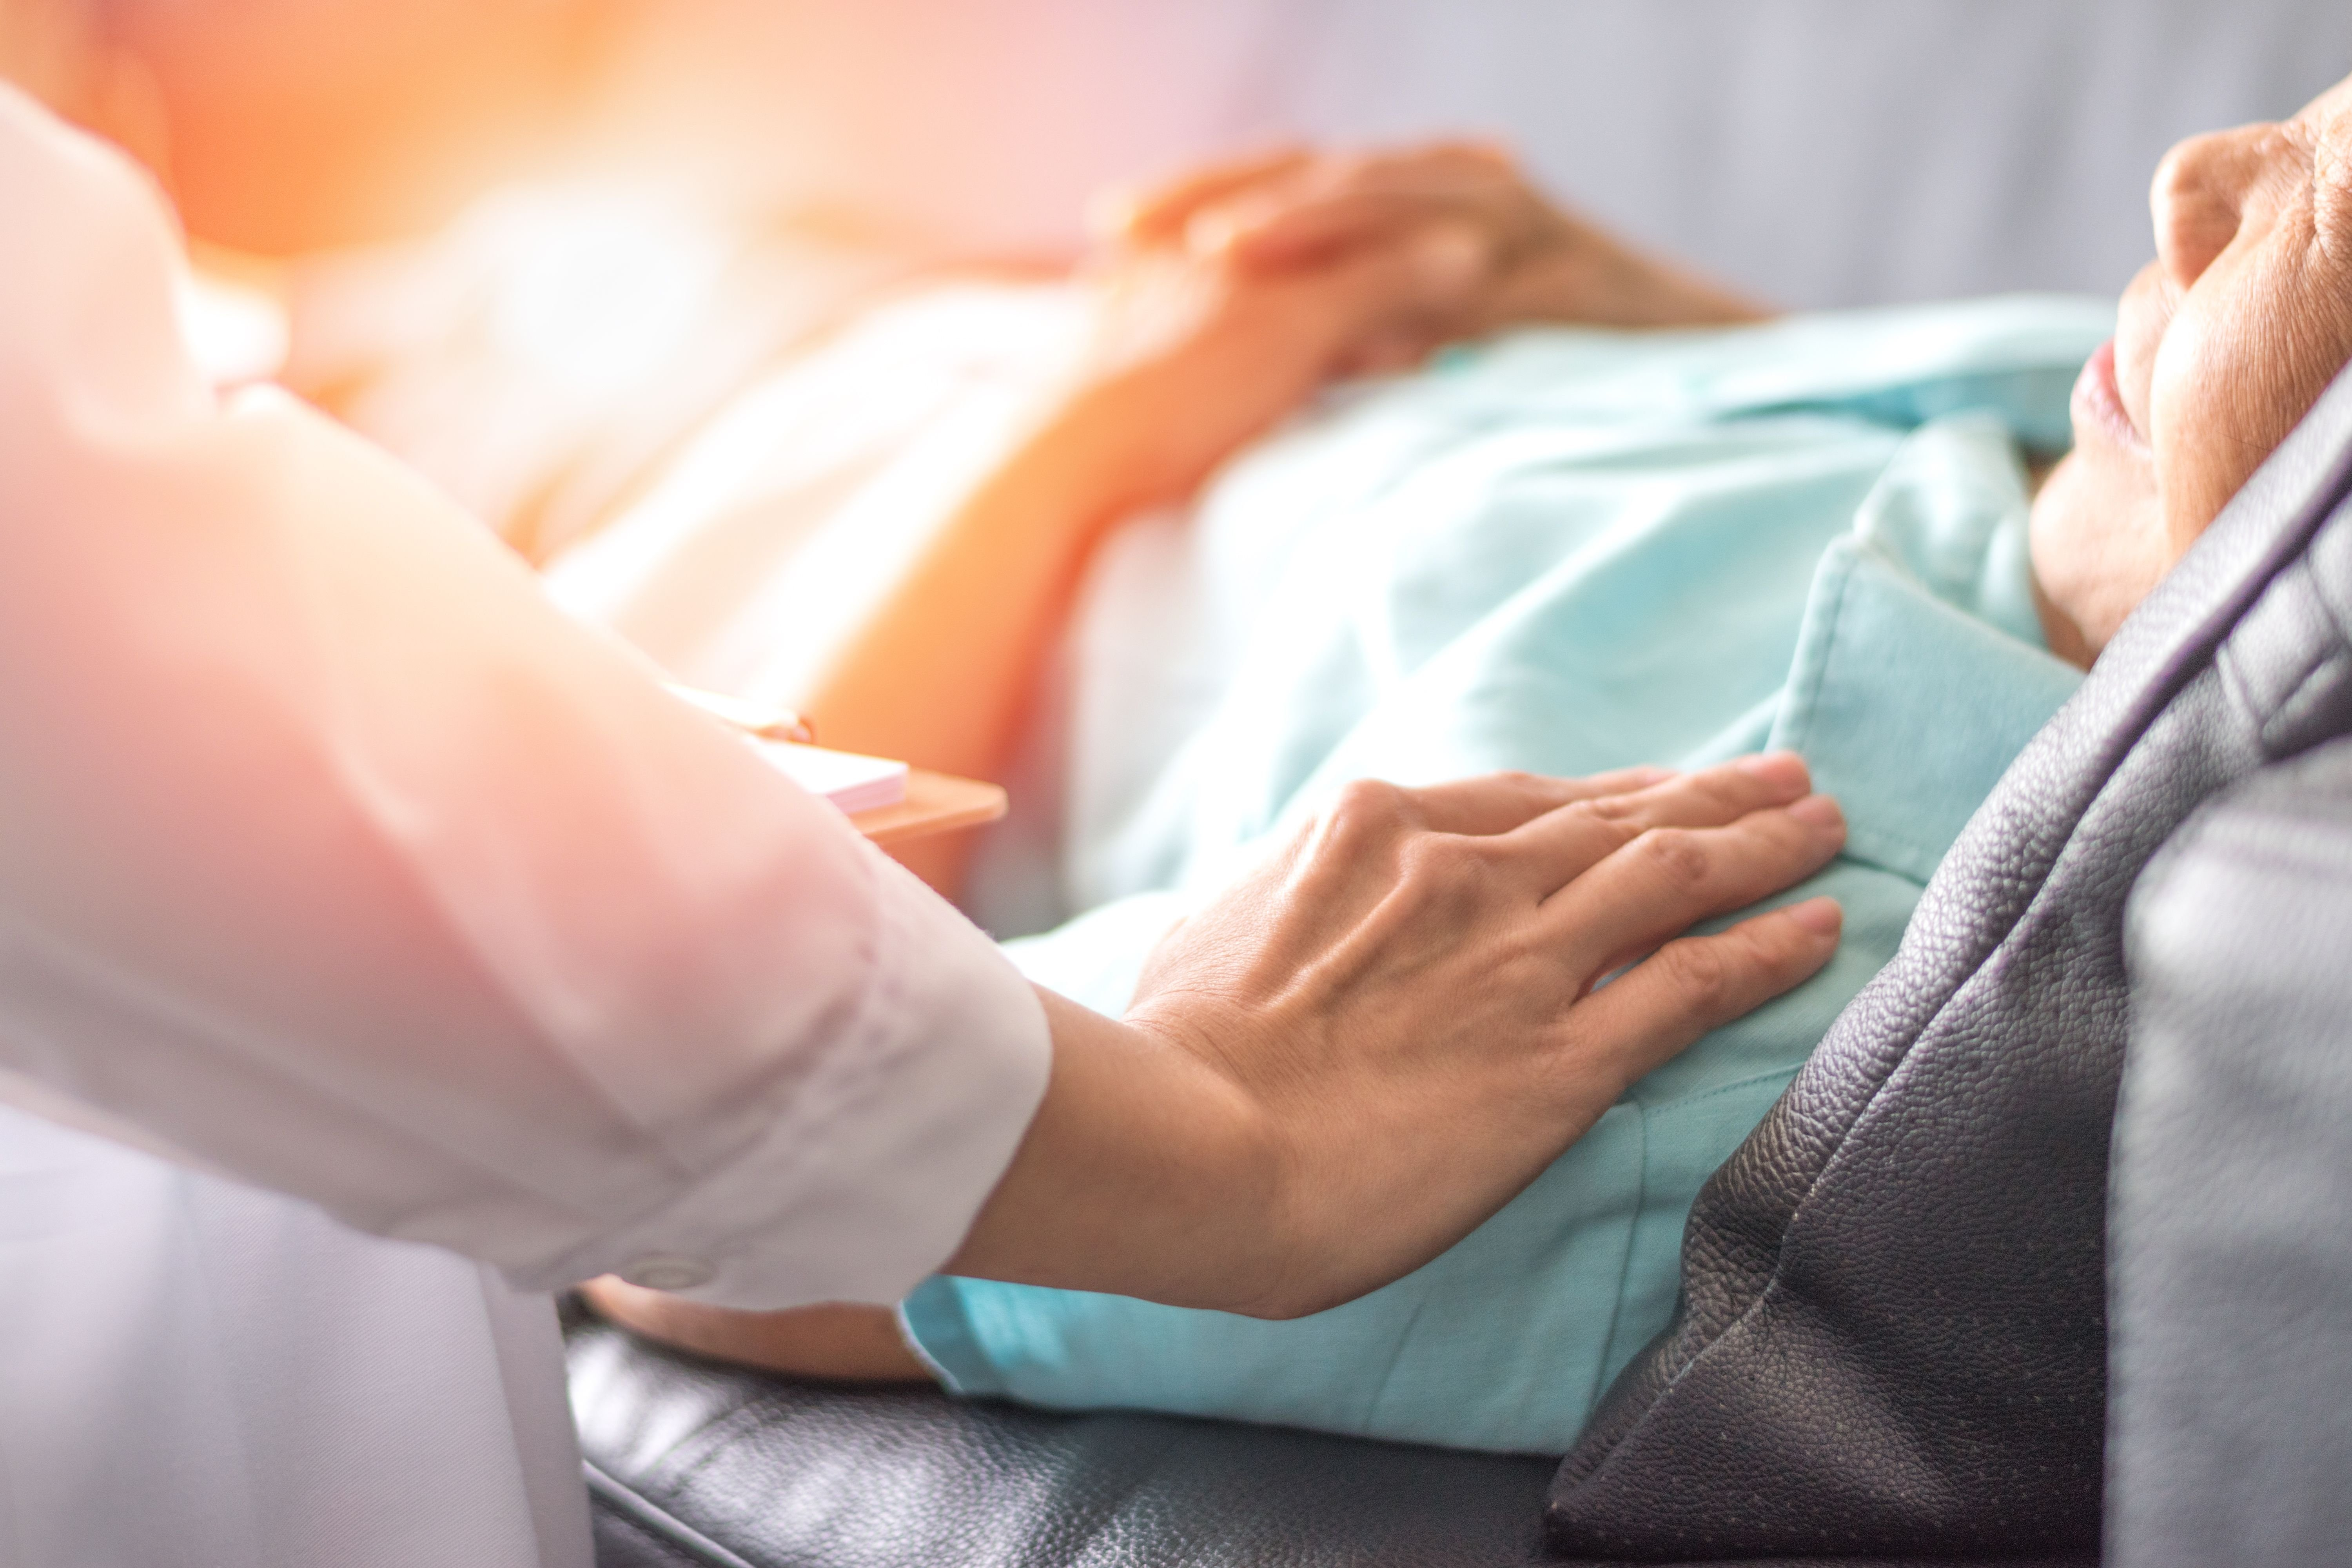 A doctor holding the patient's bed. | Source: Shutterstock